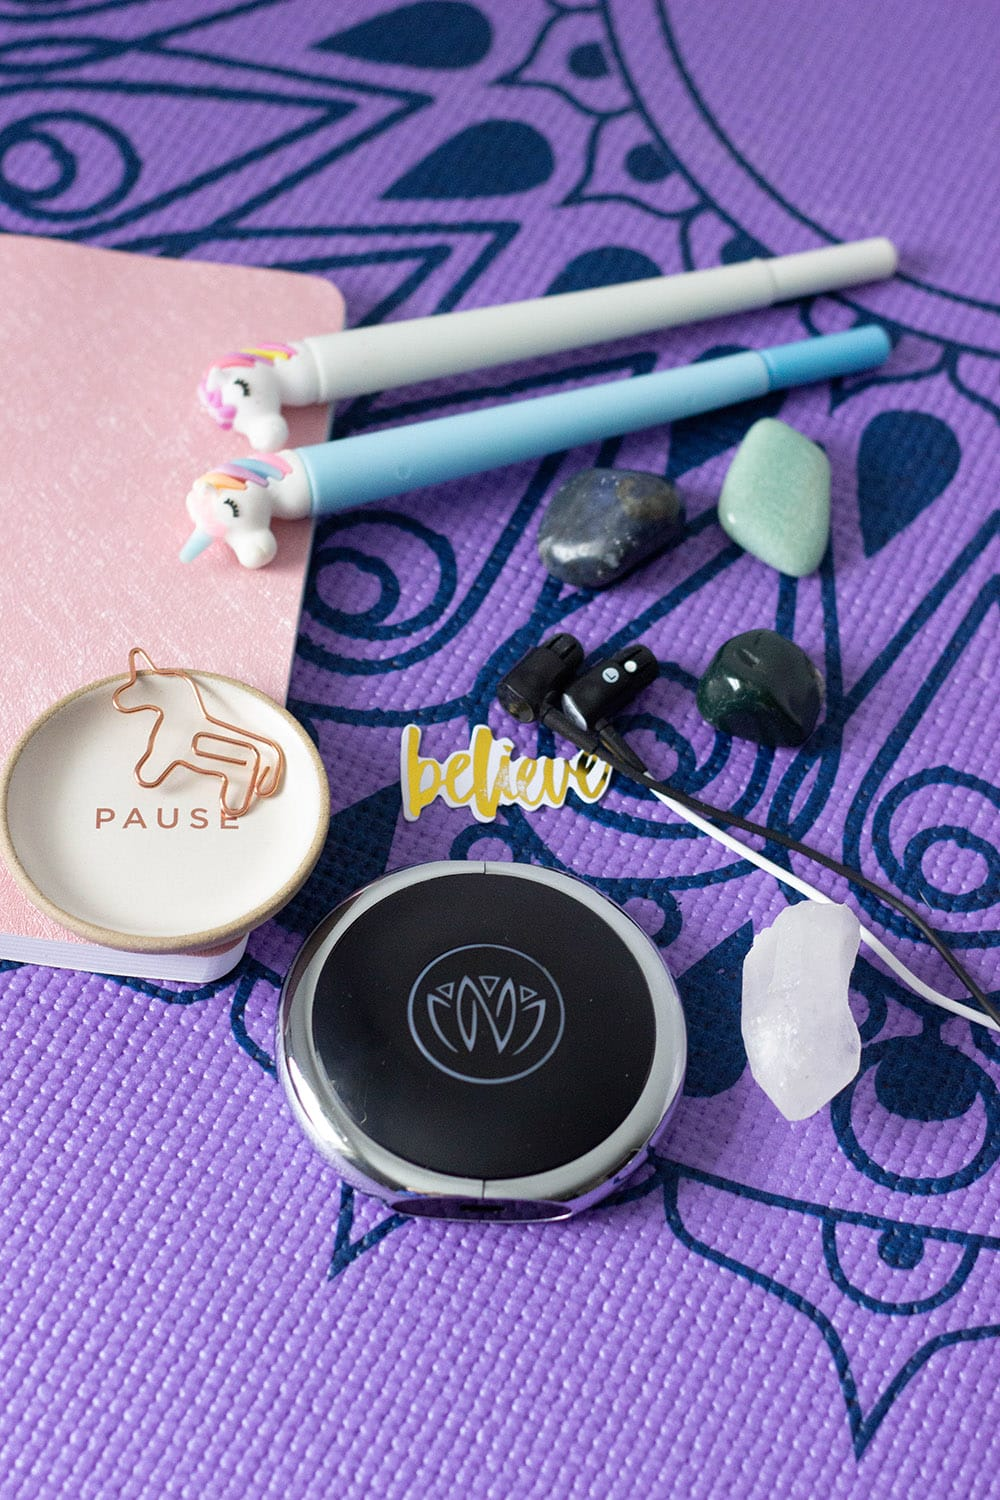 Relaxing items on a purple yoga mat